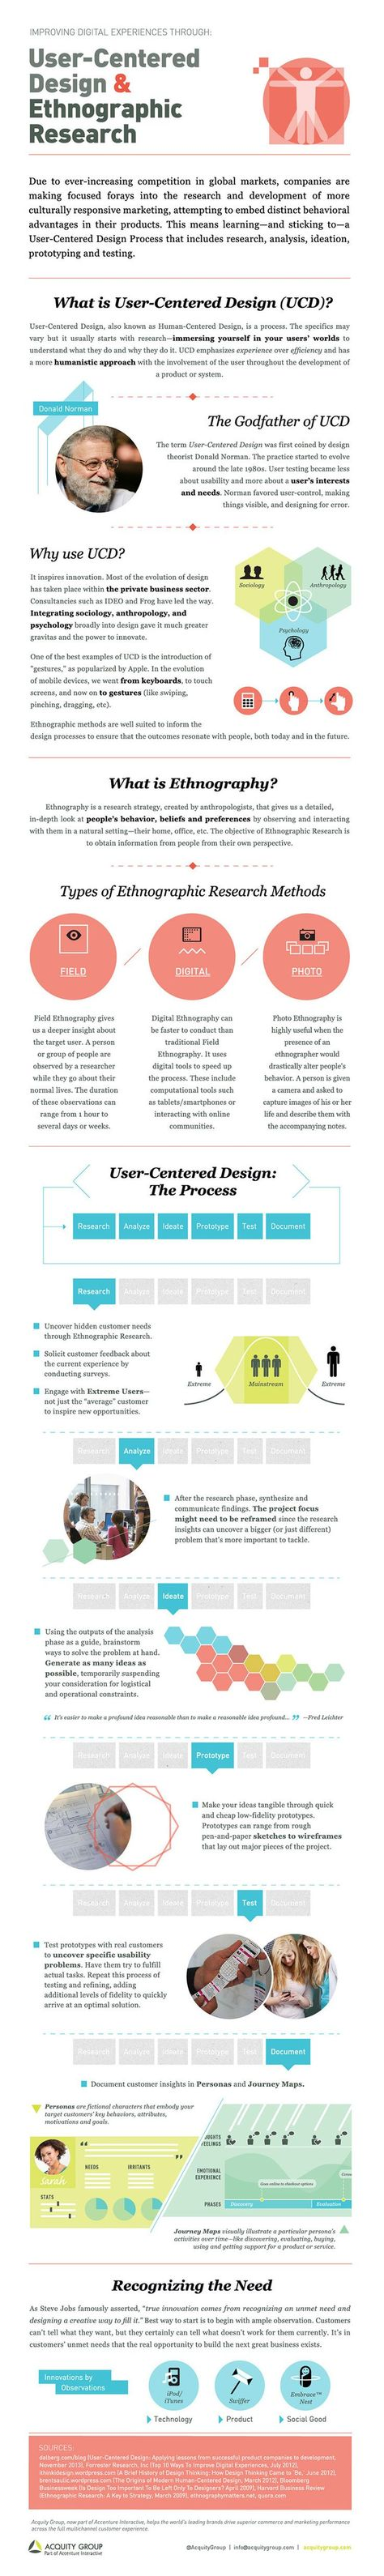 611 best ux notes images on pinterest infographic info graphics 611 best ux notes images on pinterest infographic info graphics and presentation layout malvernweather Choice Image